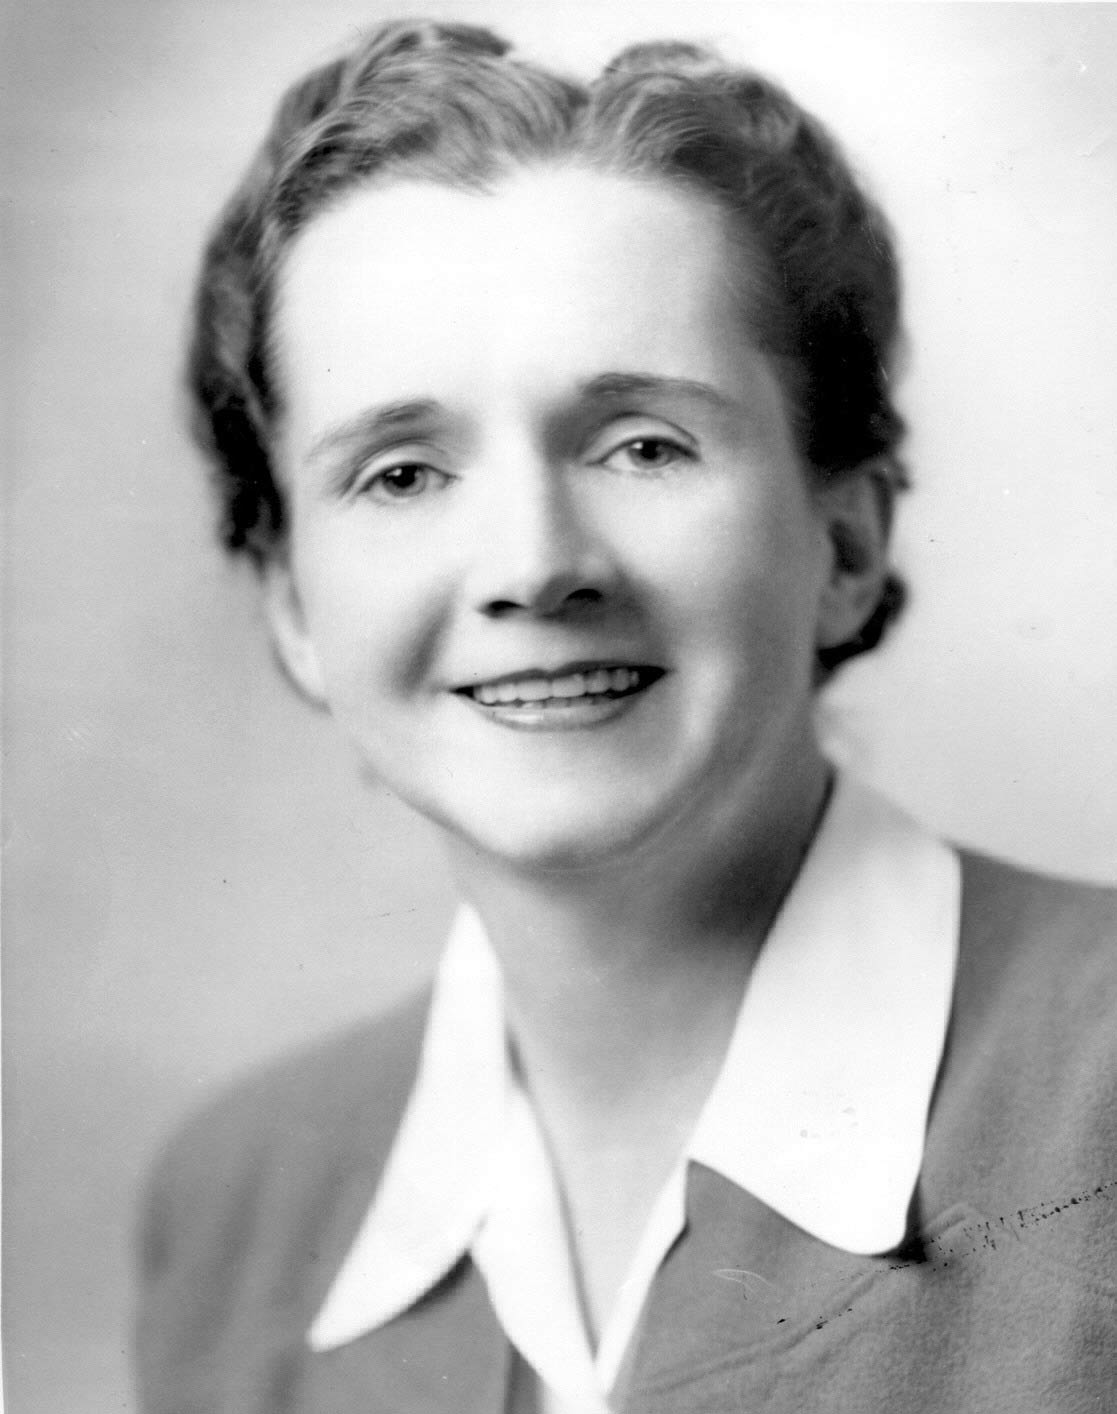 http://upload.wikimedia.org/wikipedia/commons/f/f4/Rachel-Carson.jpg